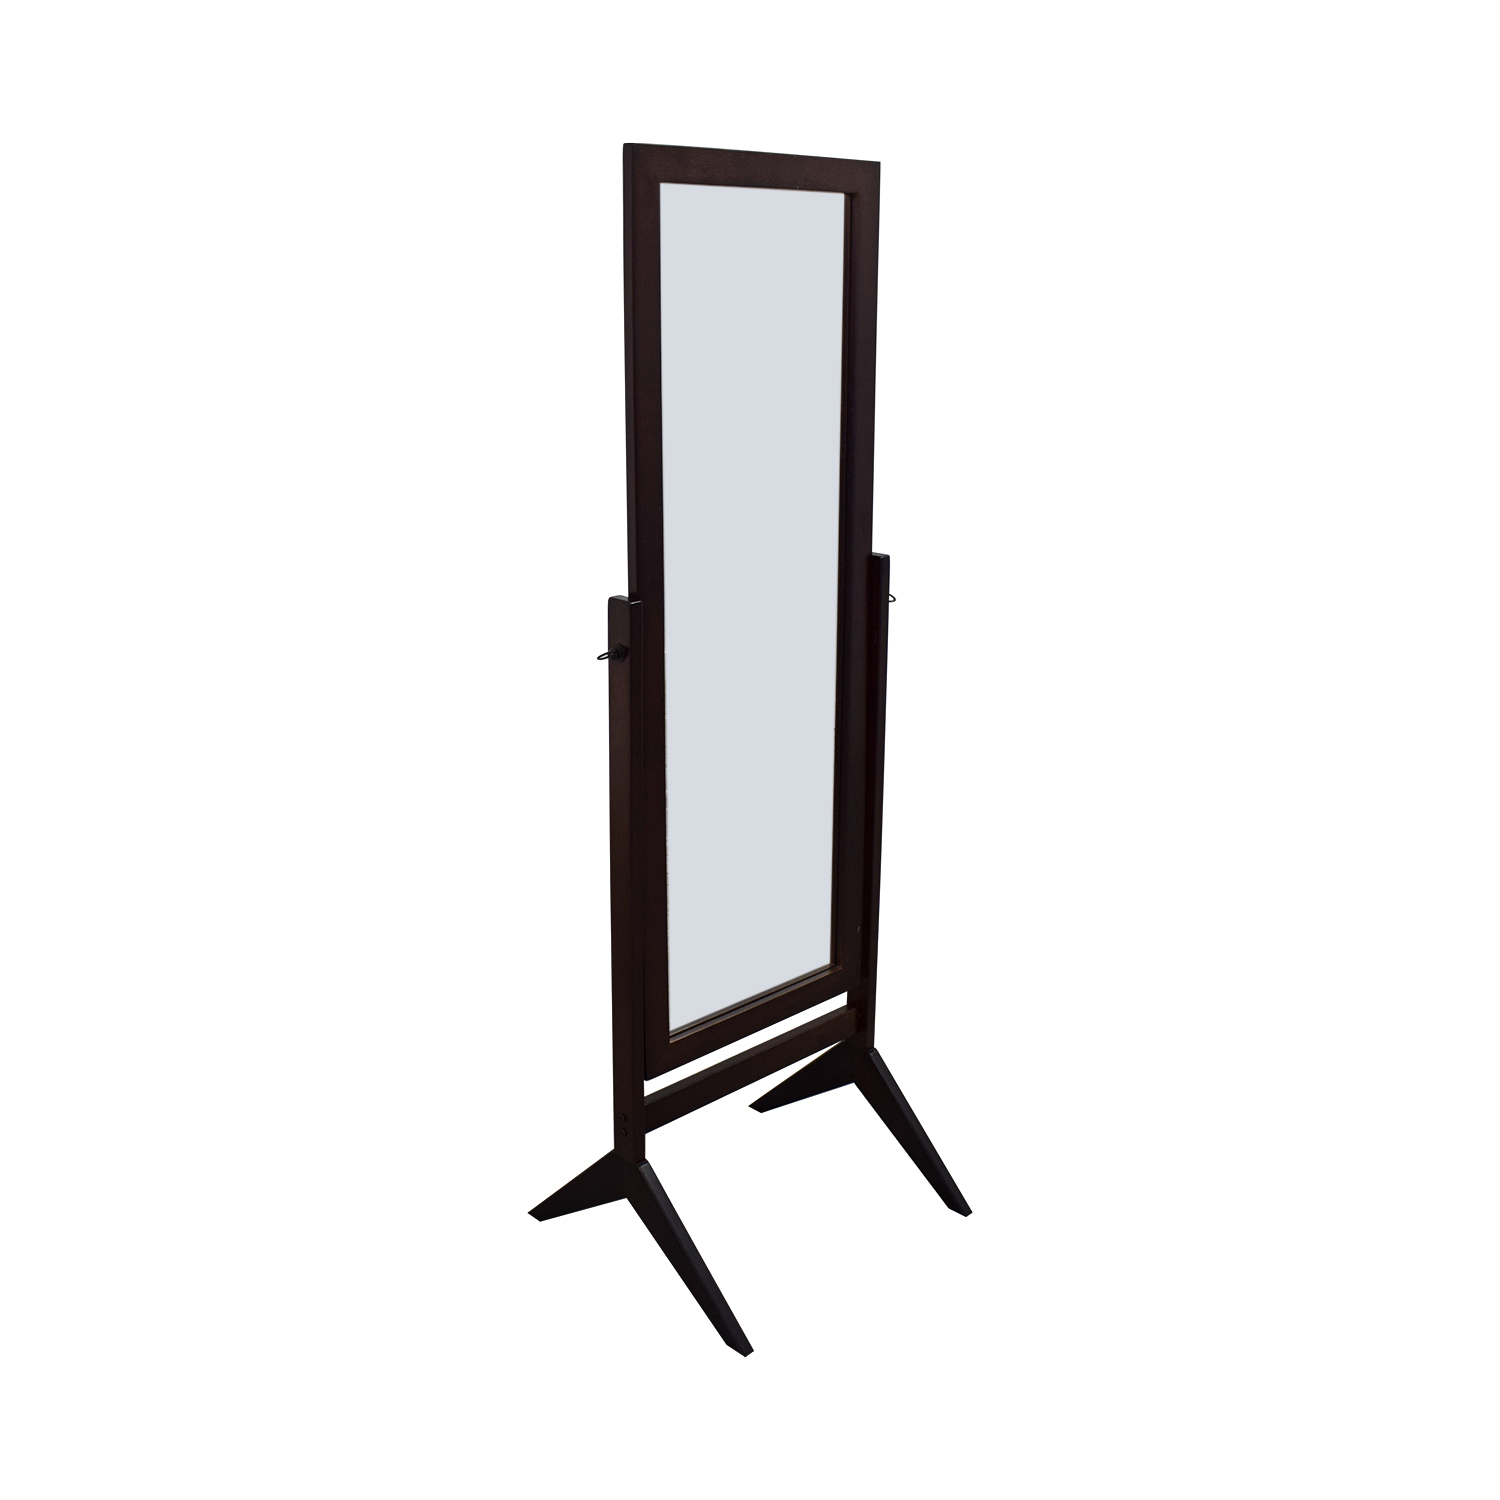 Bed Bath & Beyond Bed Bath & Beyond Brown Cheval Floor Mirror on sale